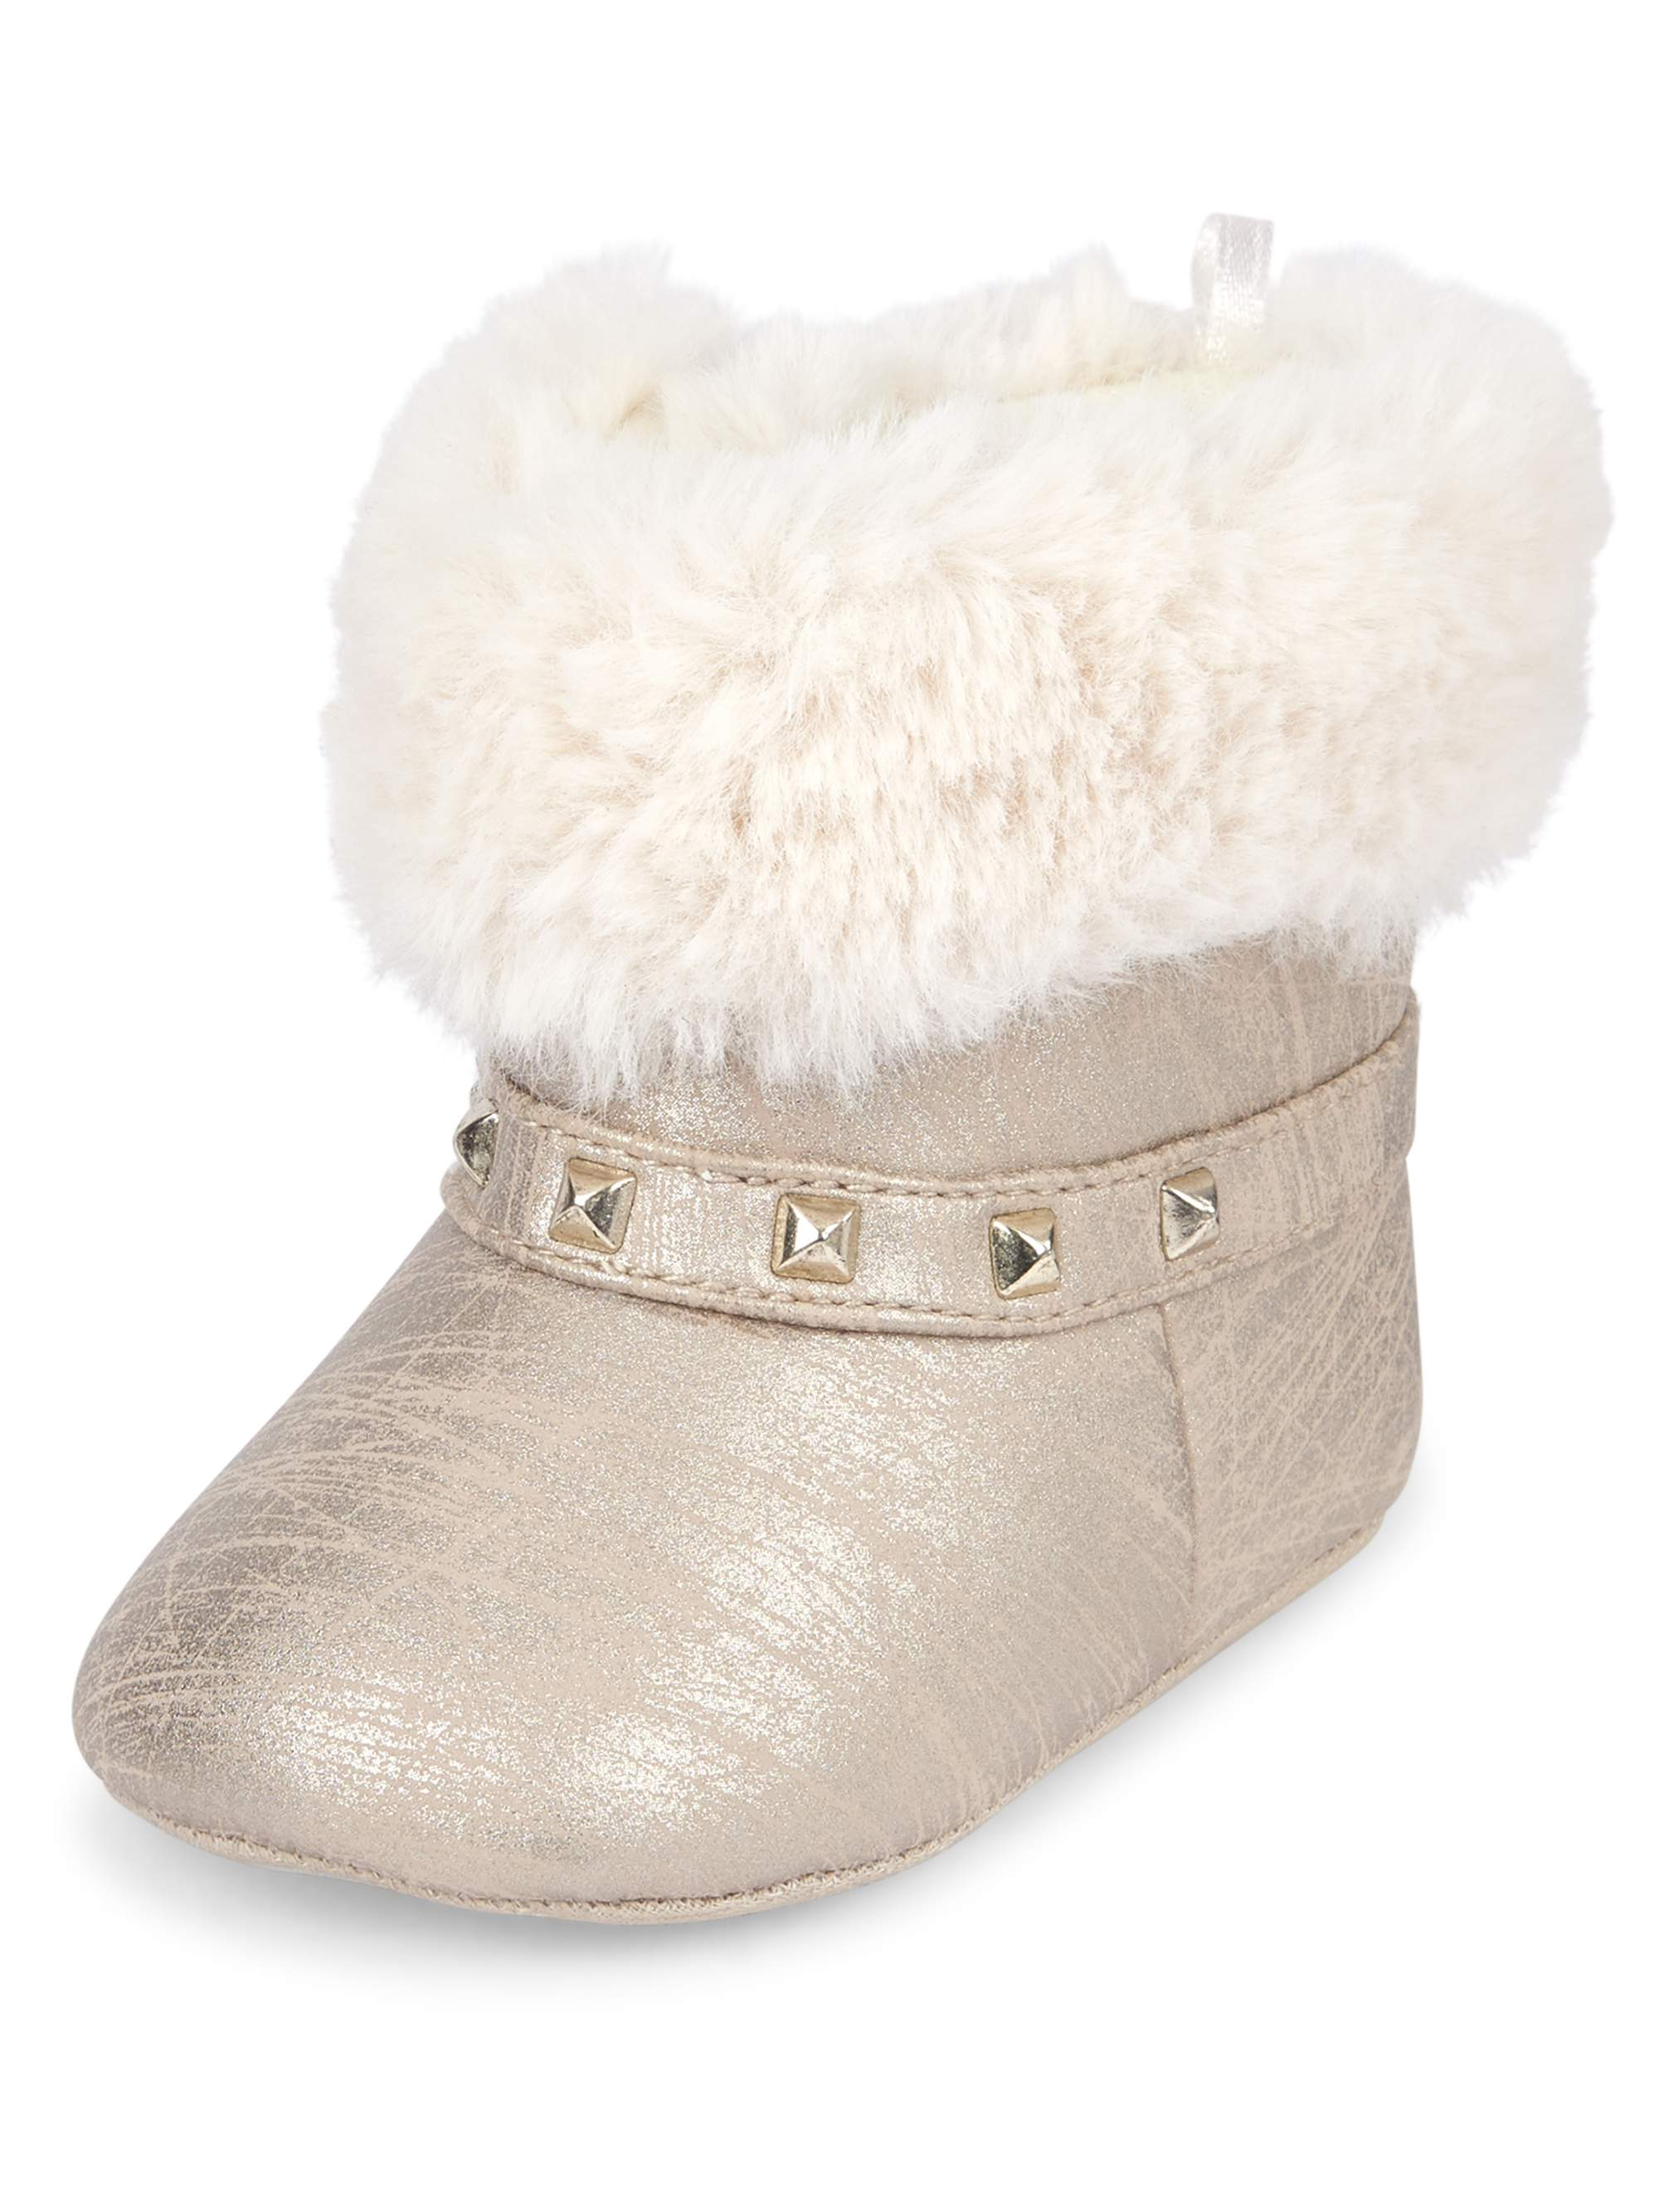 The Children's Place Baby Girls' Studded Bootie